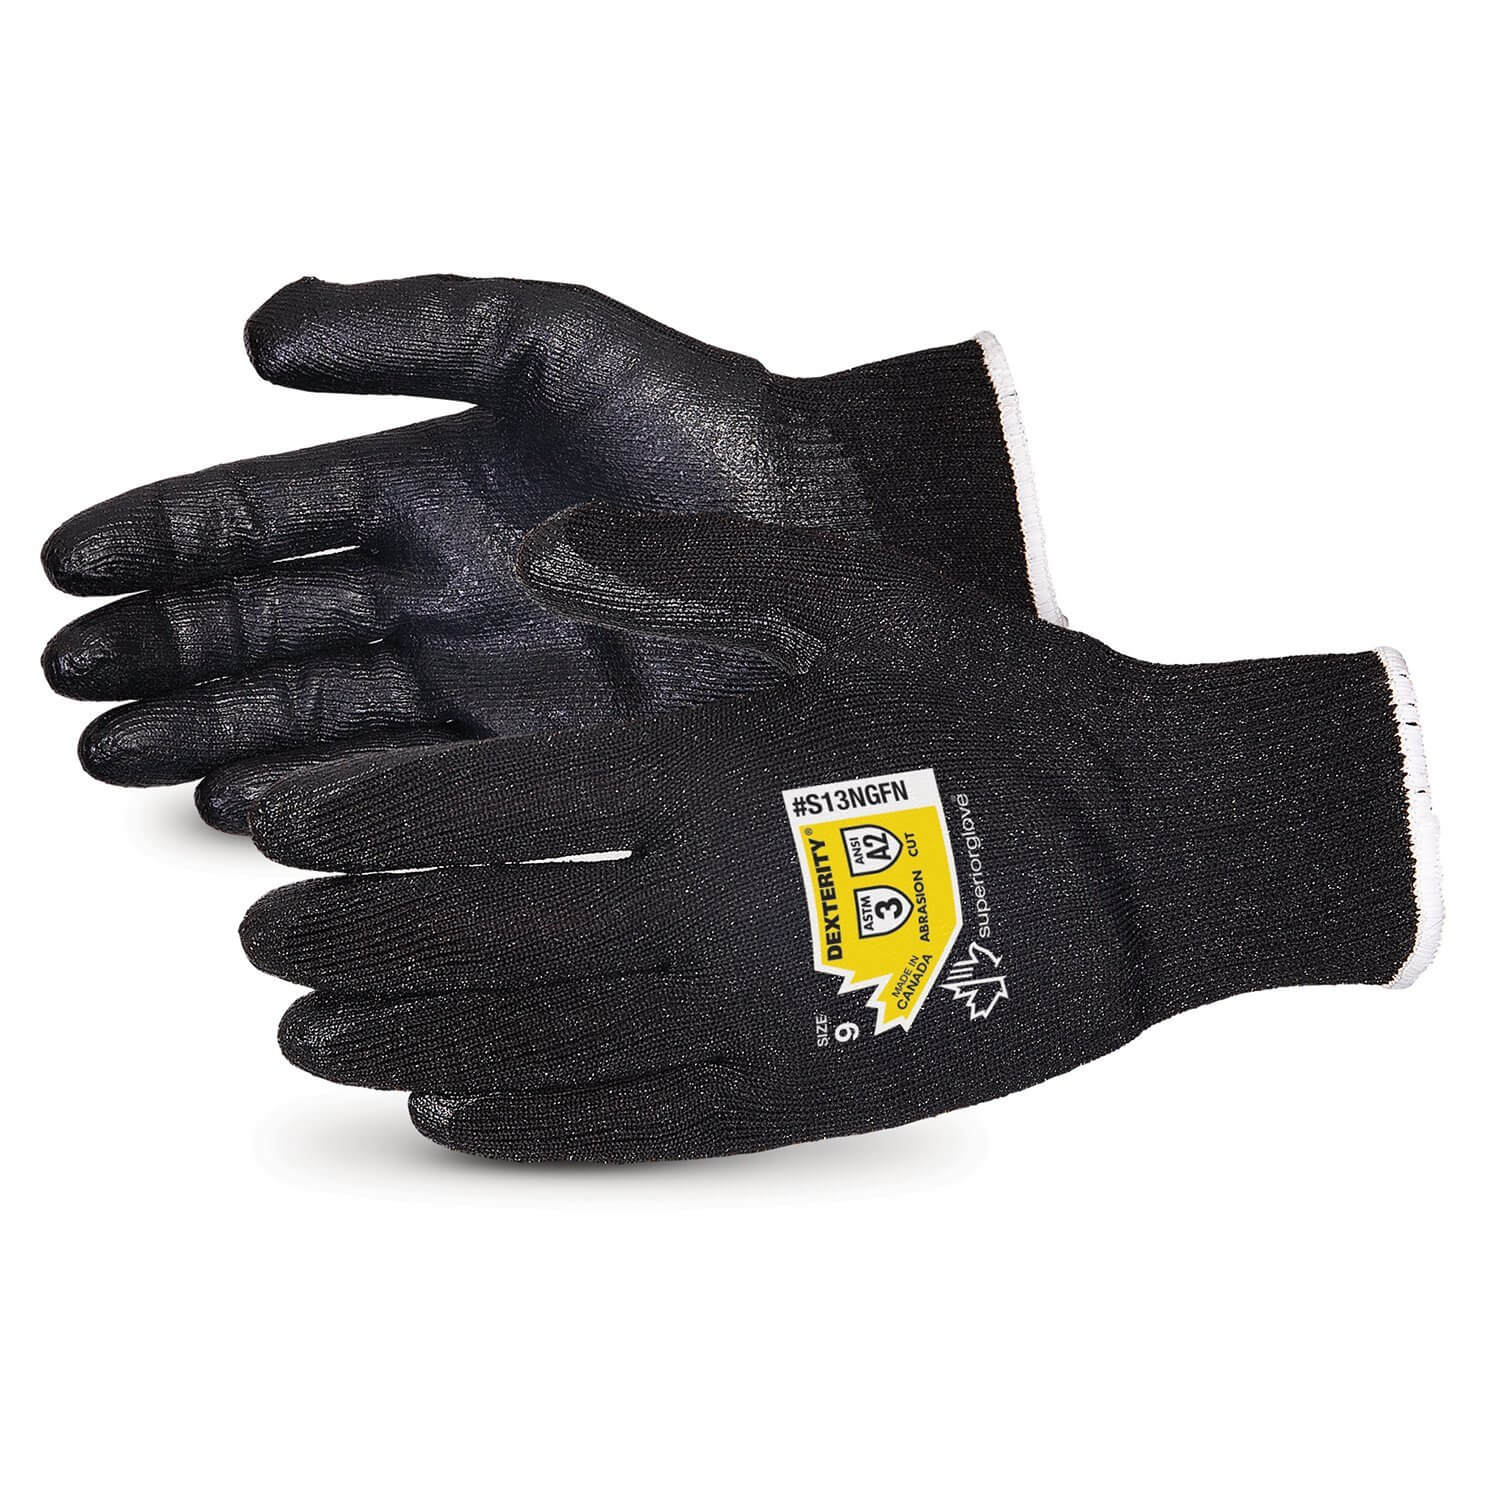 Dexterity High Abrasion and Cut Resistant Glove by Superior Glove